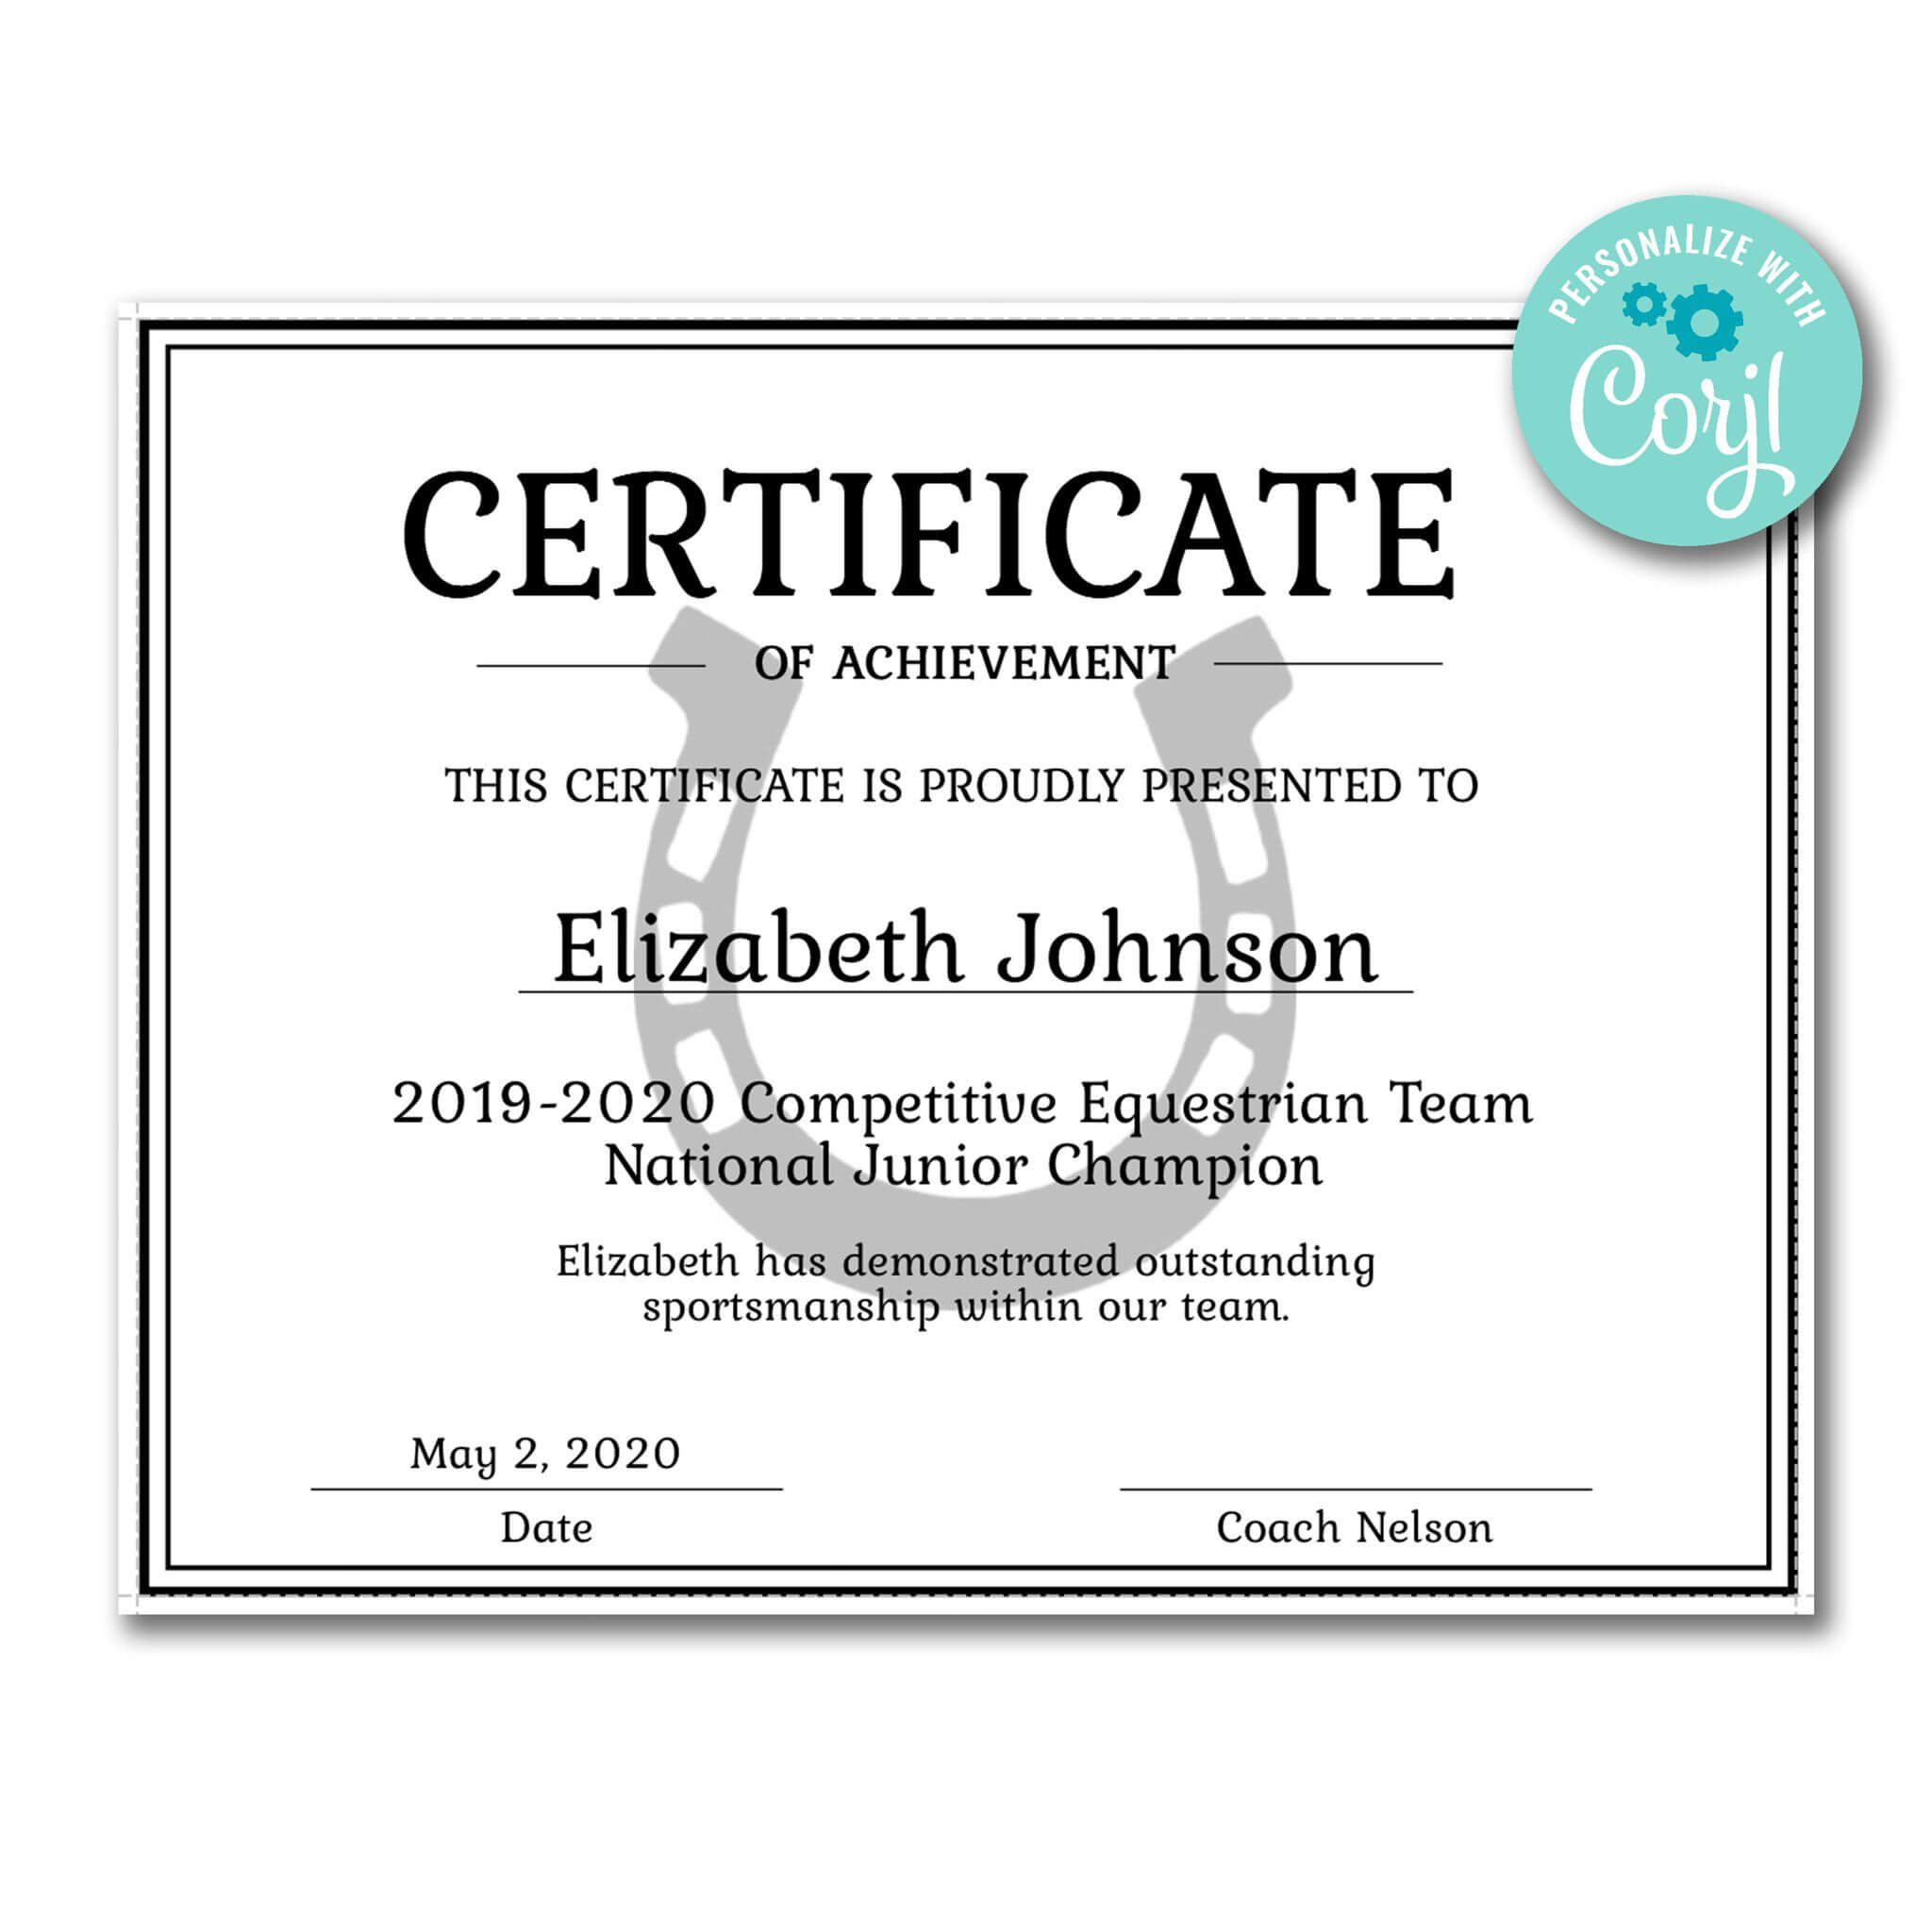 Horseshoe Certificate | Certificate Templates, Certificate Throughout Softball Certificate Templates Free